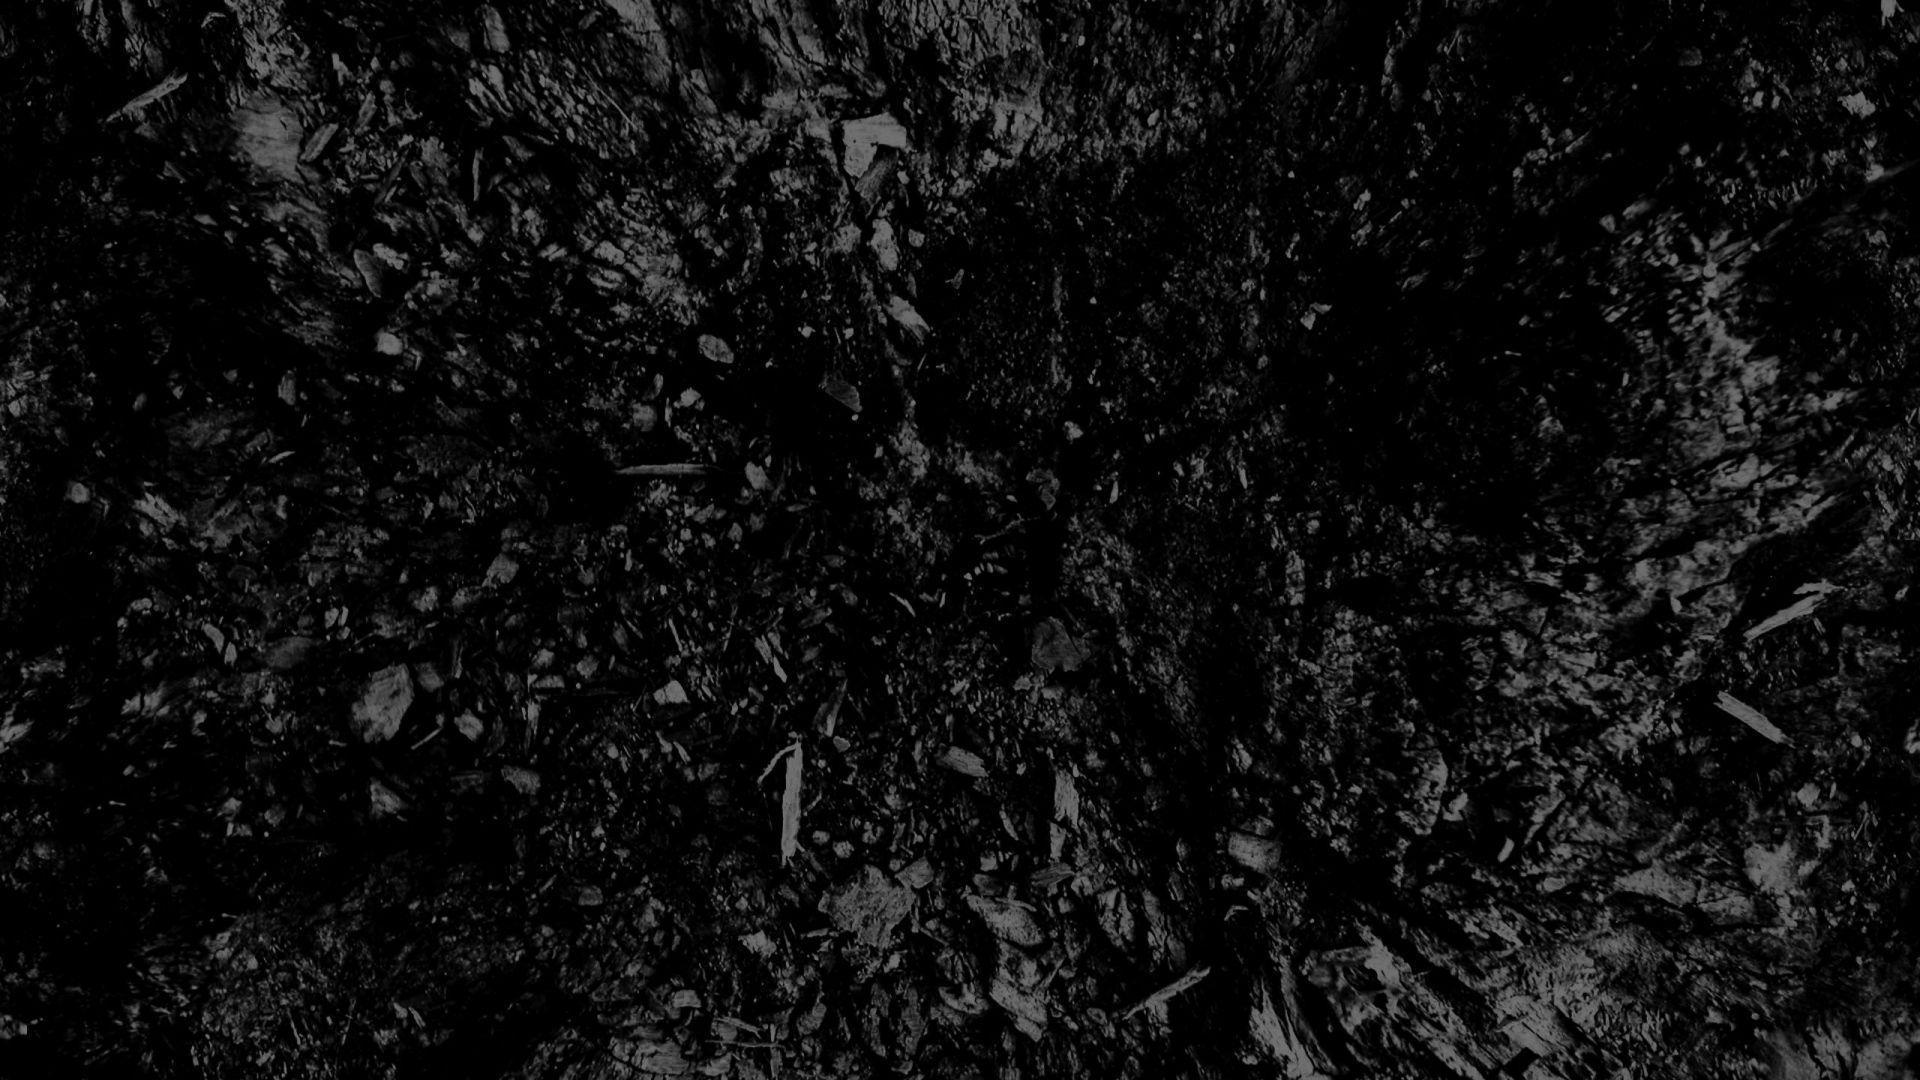 Dark, Black and White, Abstract, Black Backgrounds Wallpapers